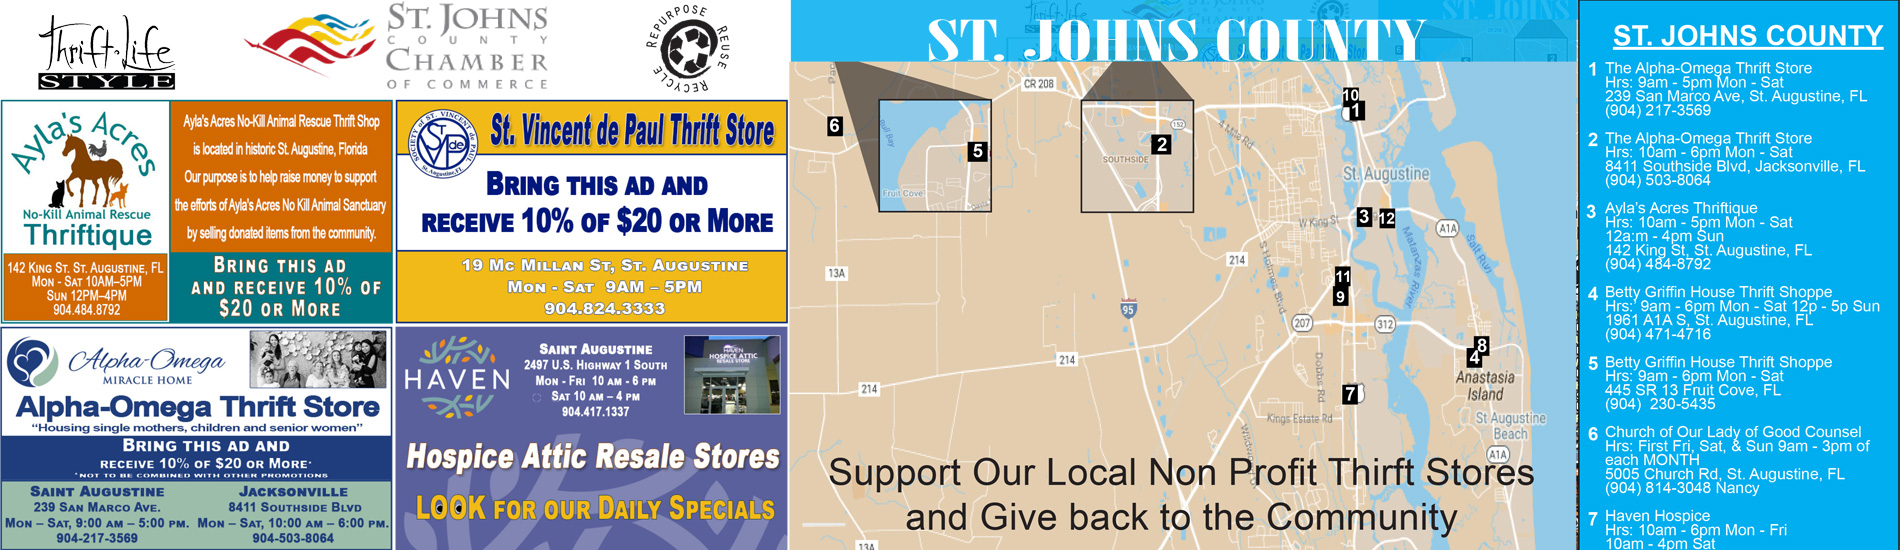 St Johns County Map 2018